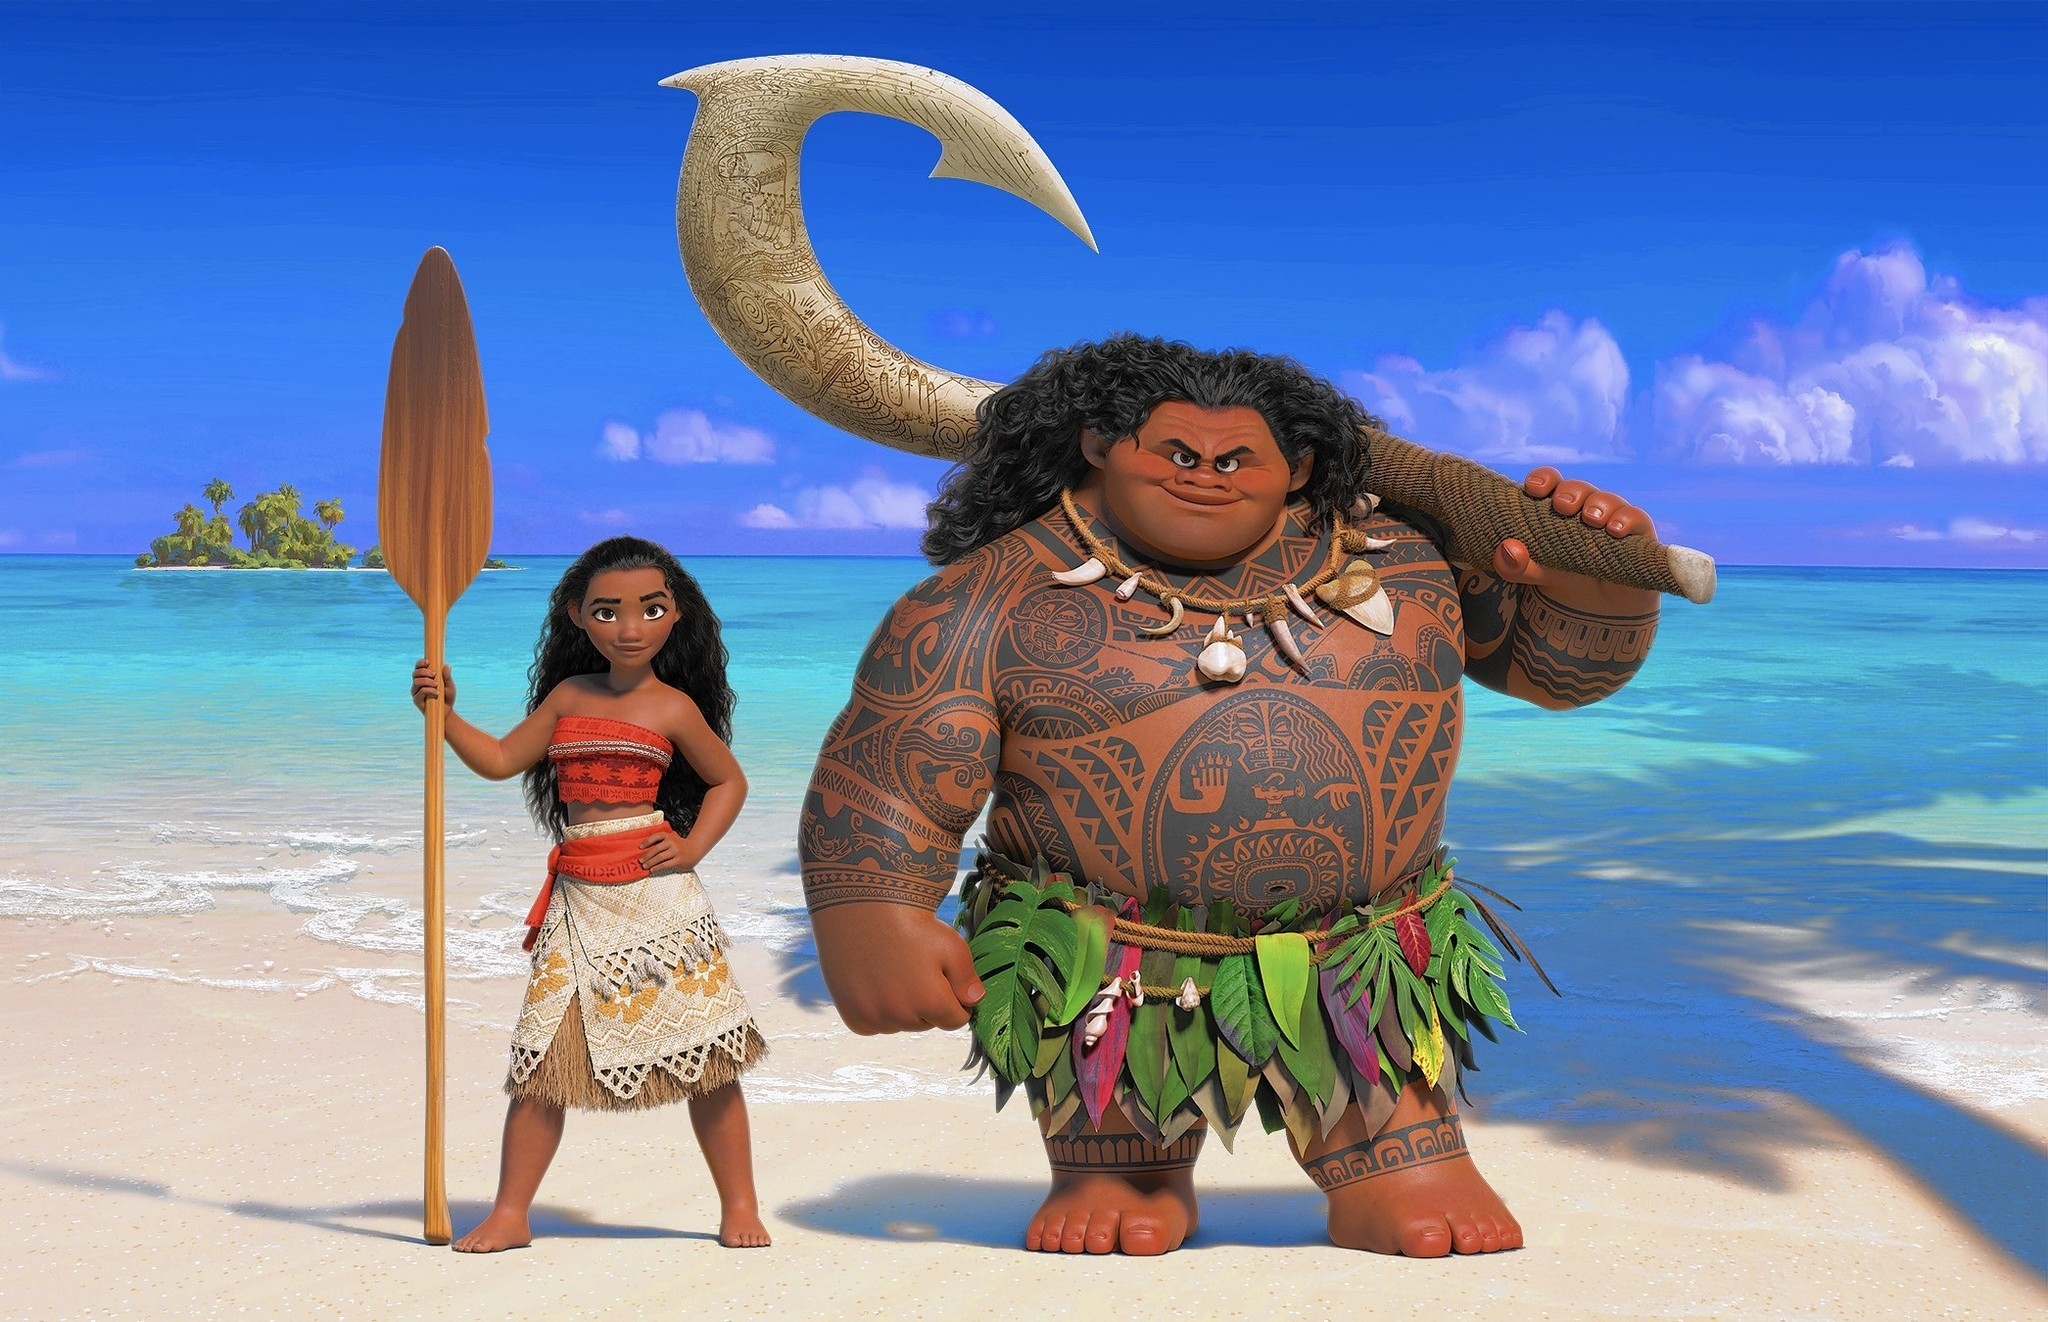 Explaining that lousy maui costume and cultural